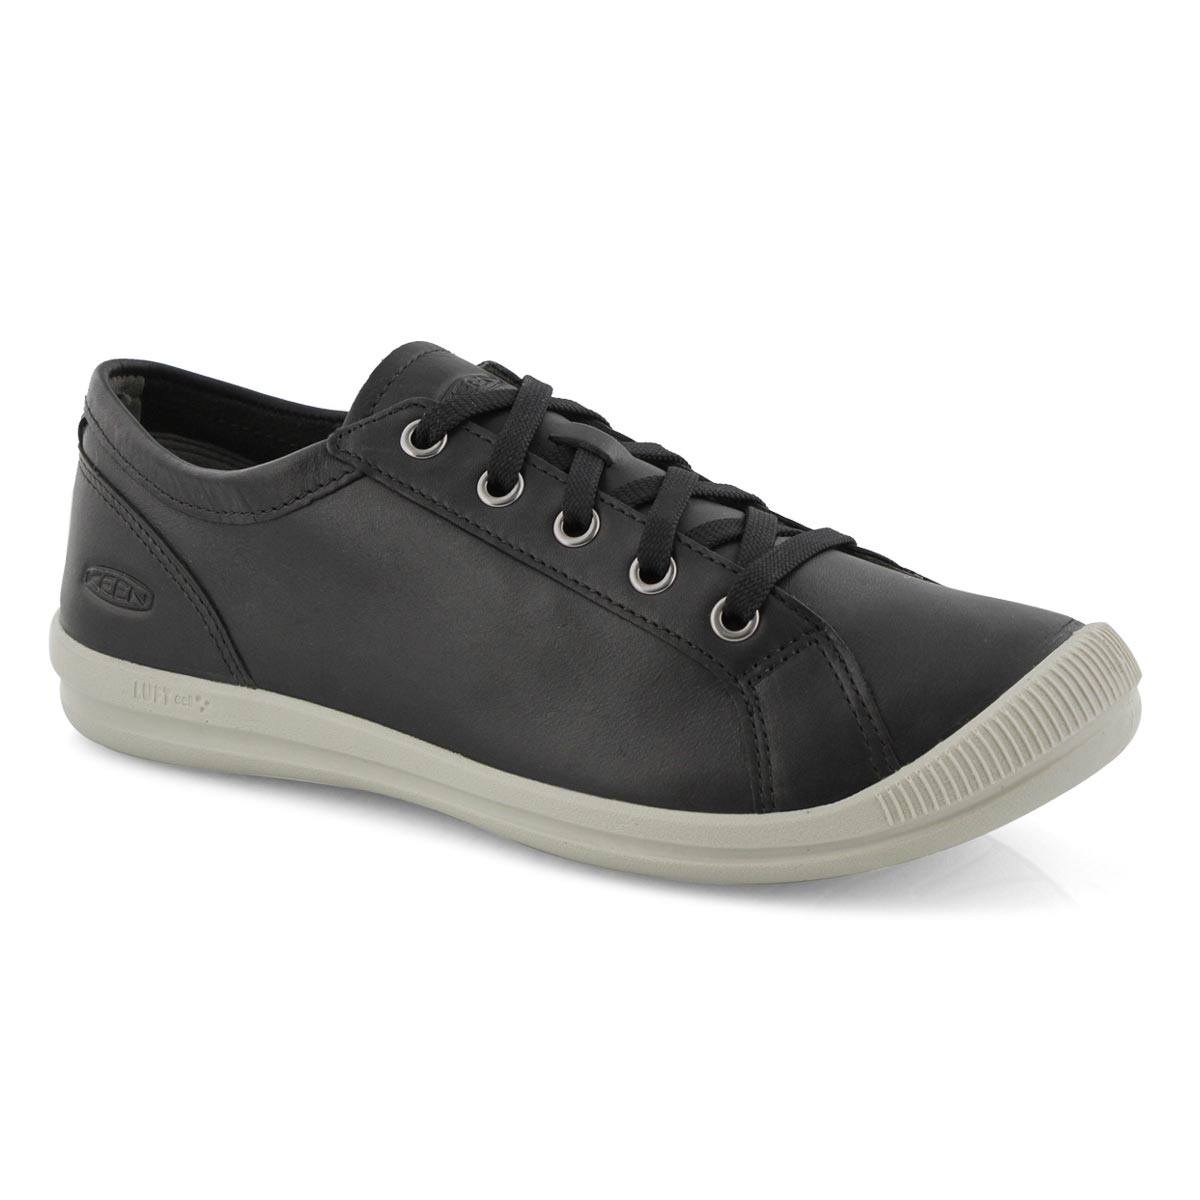 Lds Lorelai black casual lace up sneaker